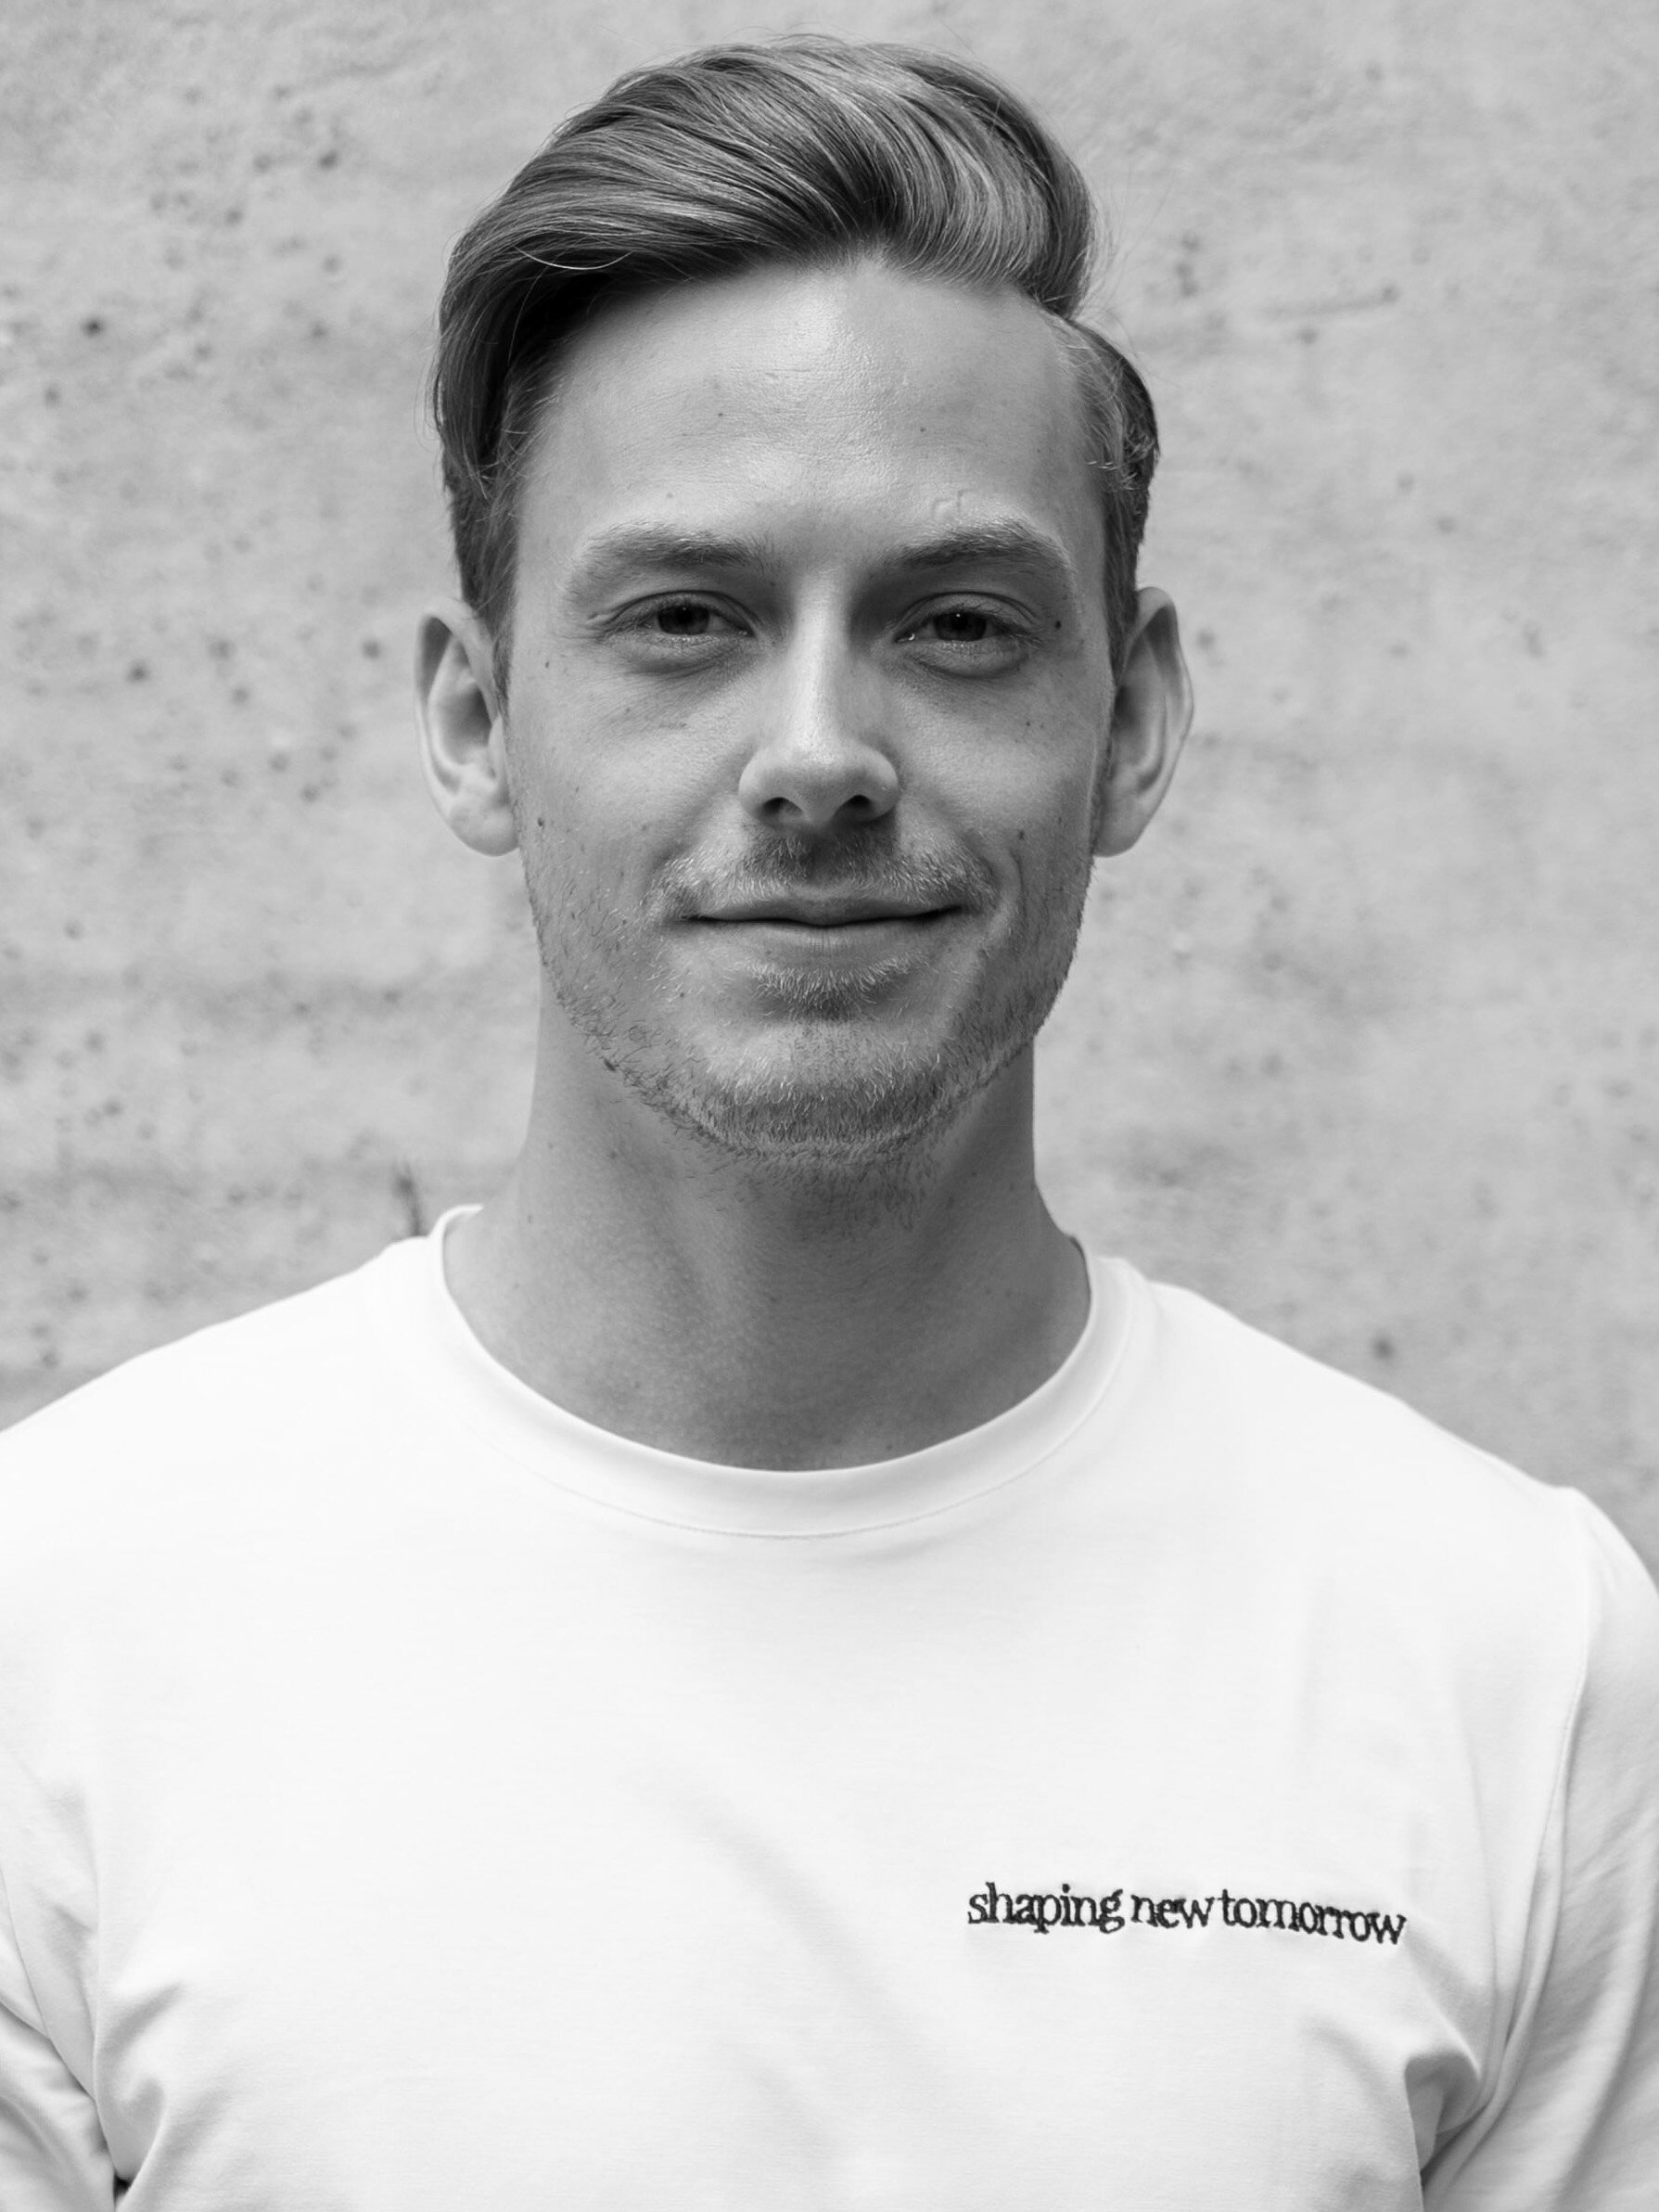 CHRISTIAN AACHMANN  CO-FOUNDER, SHAPING NEW TOMORROW  TRACK: CREATIVE MINDS